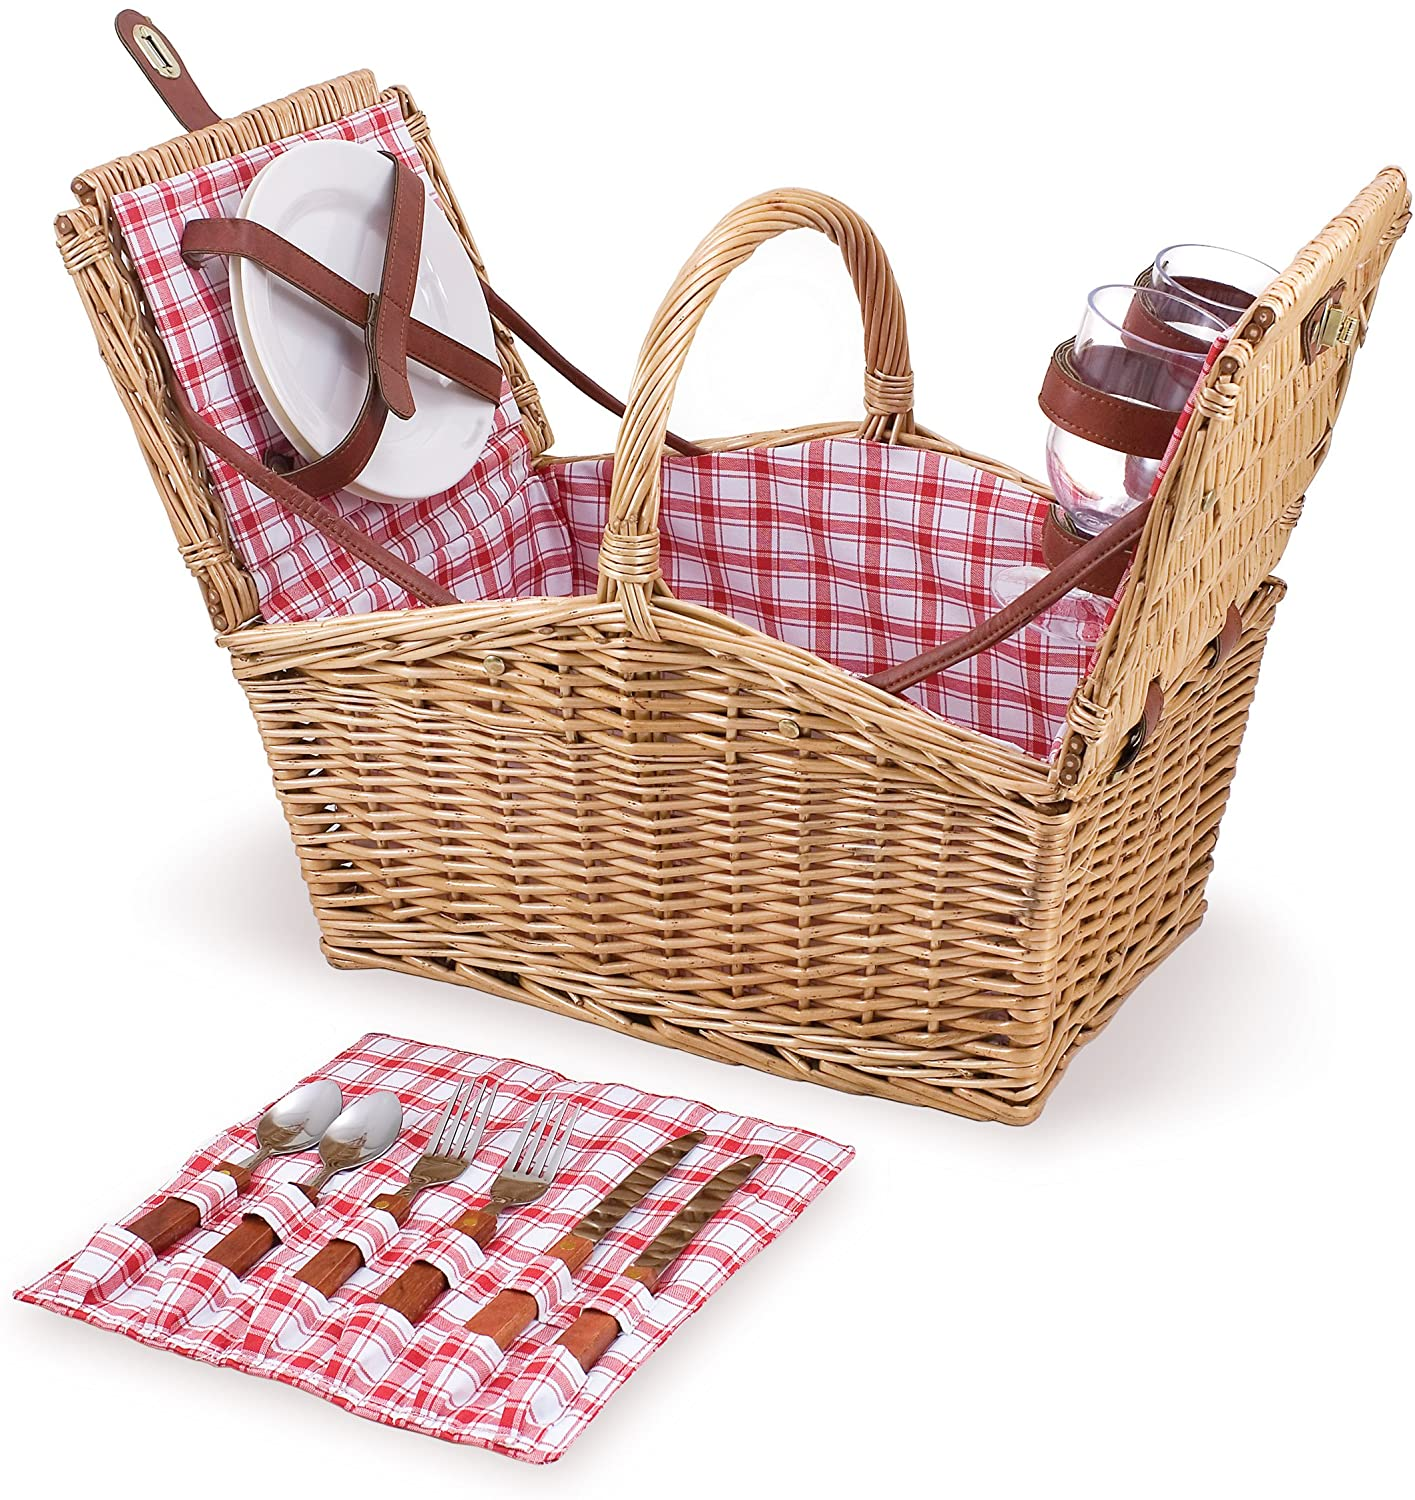 picnic basket with red plaid interior